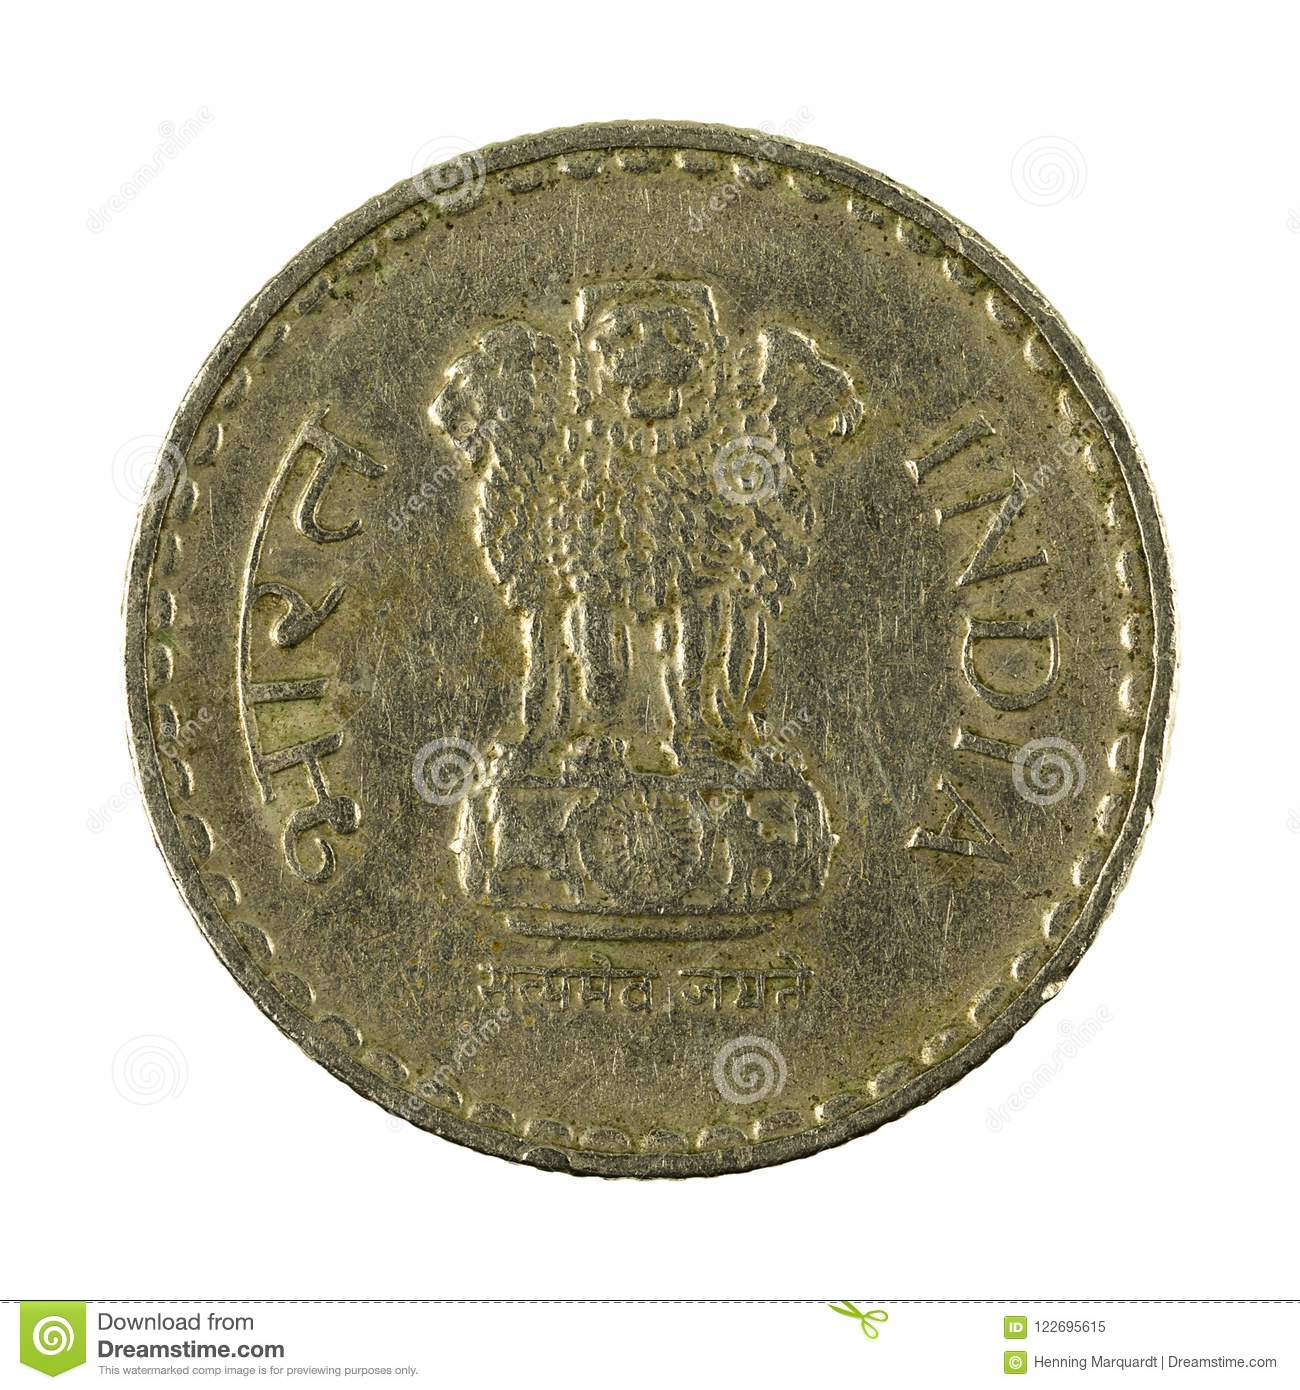 2000 5 rupees coin value